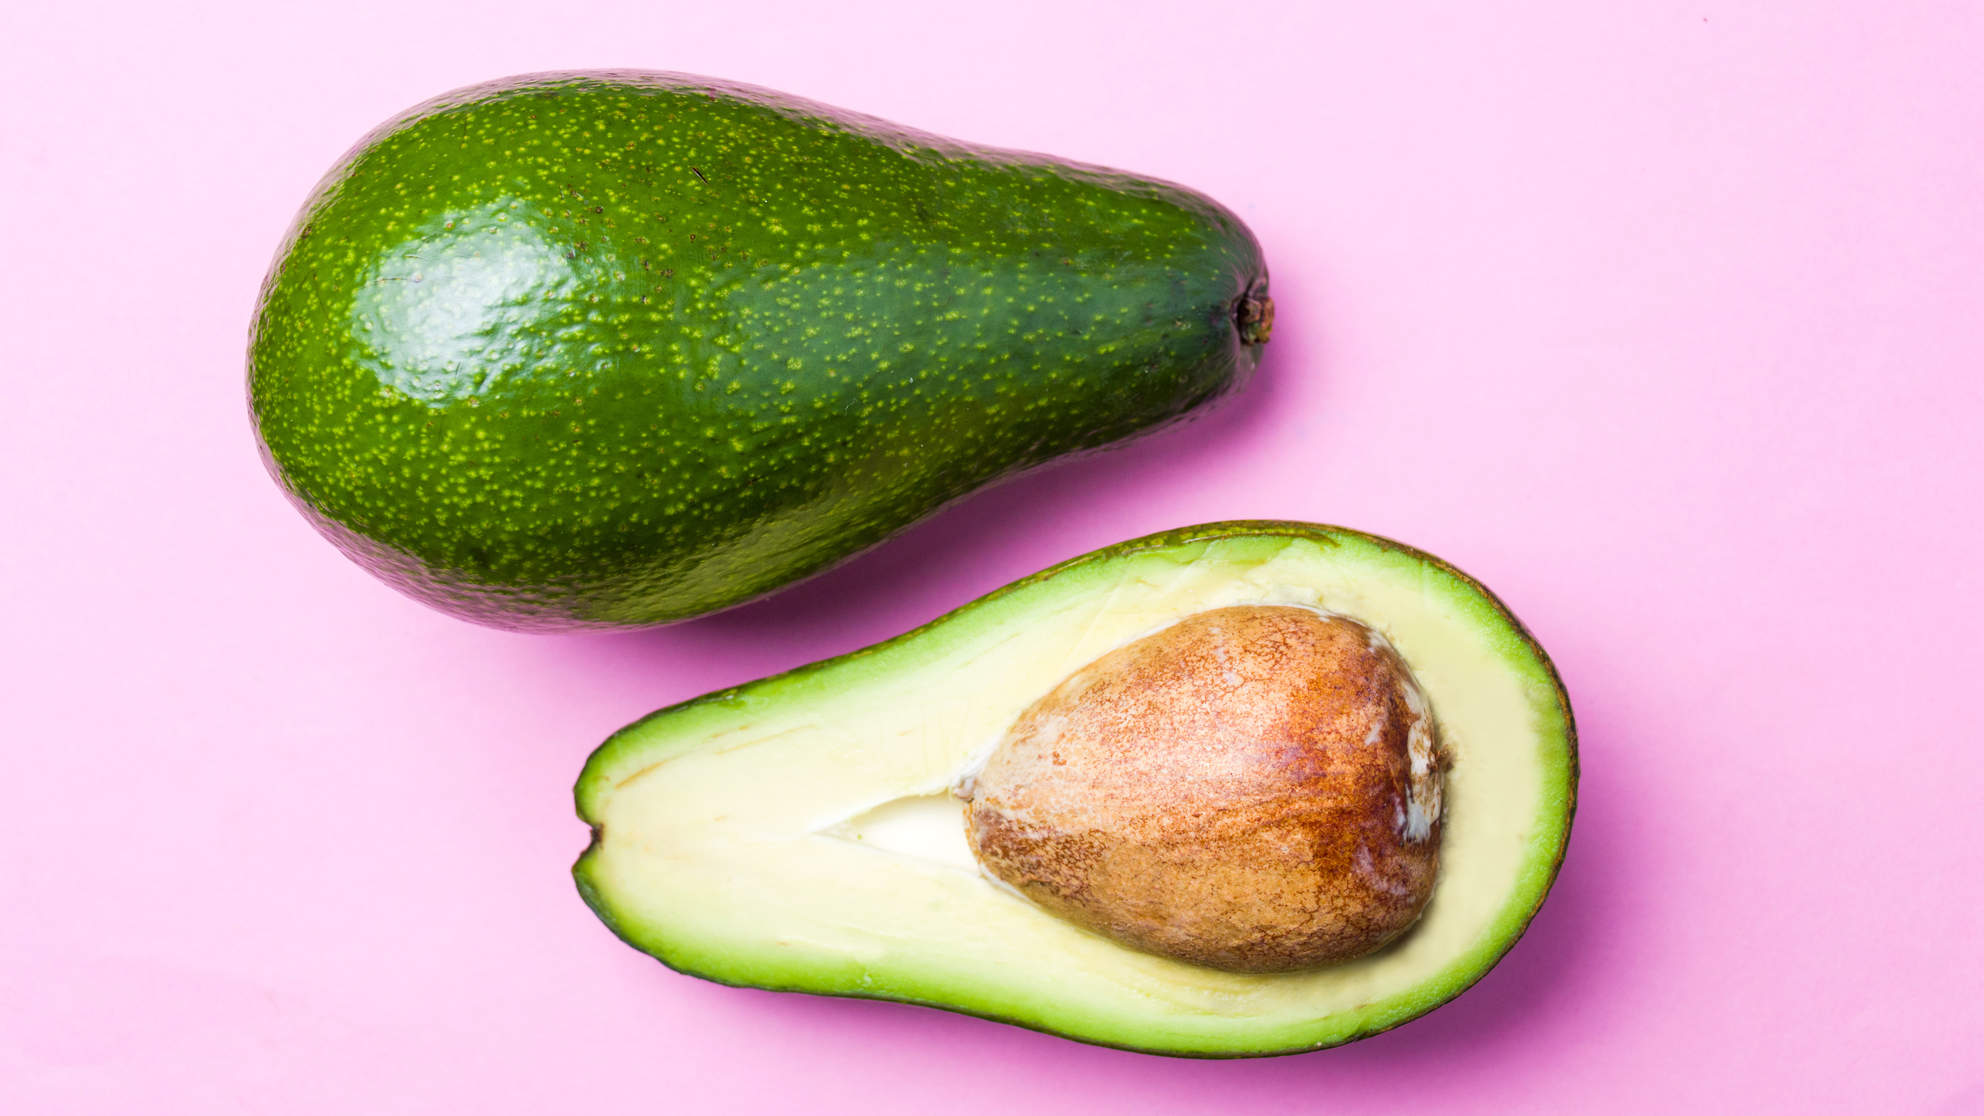 brown-avocados-pink-background